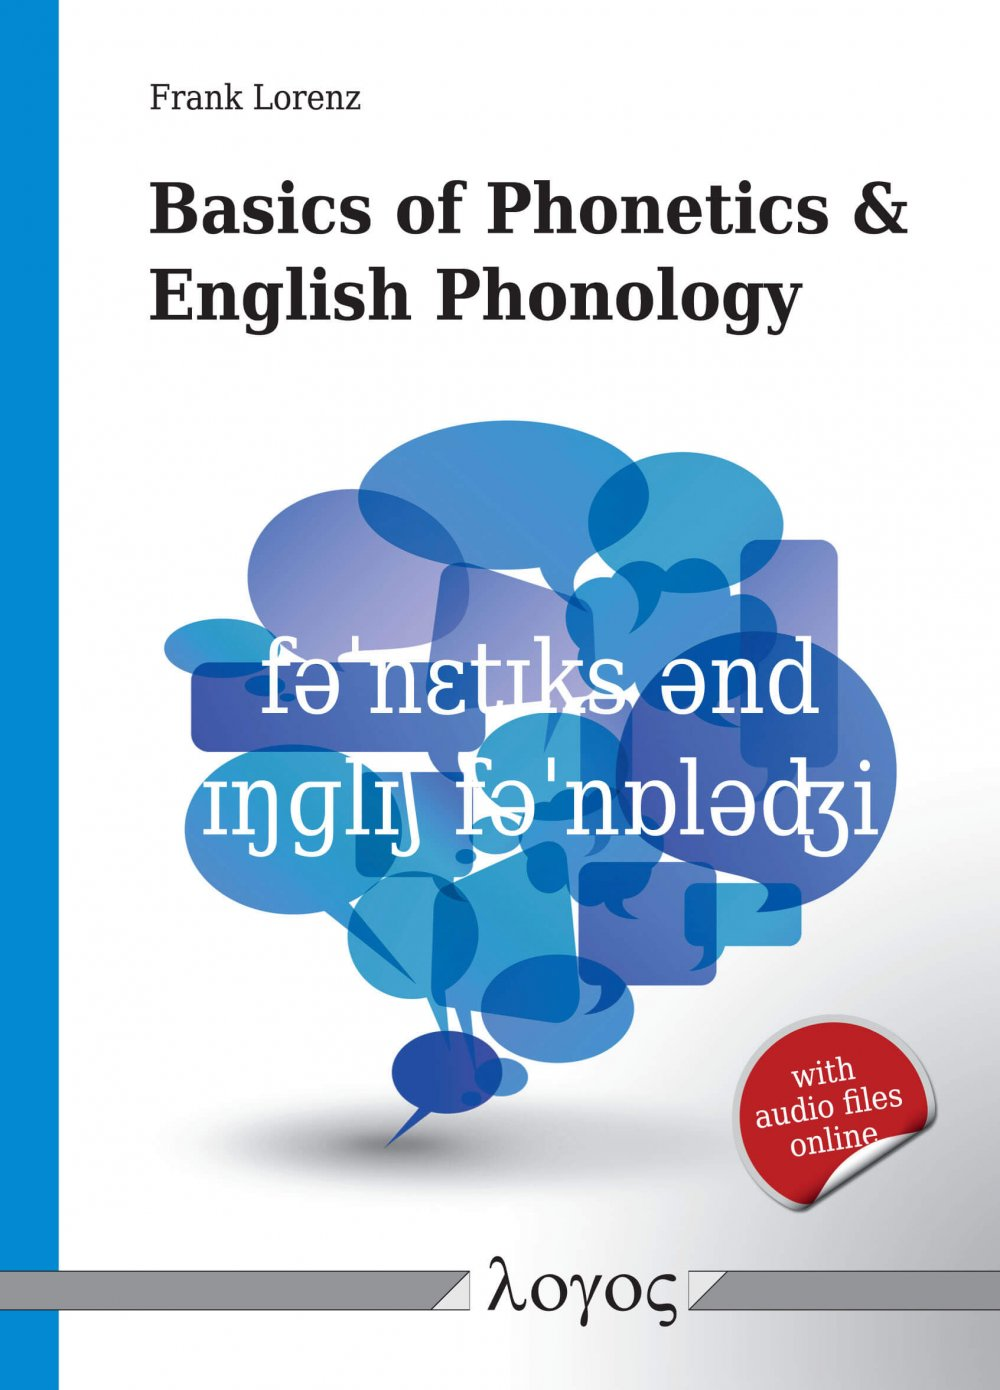 2013. Basics of Phonetics and English Phonology.